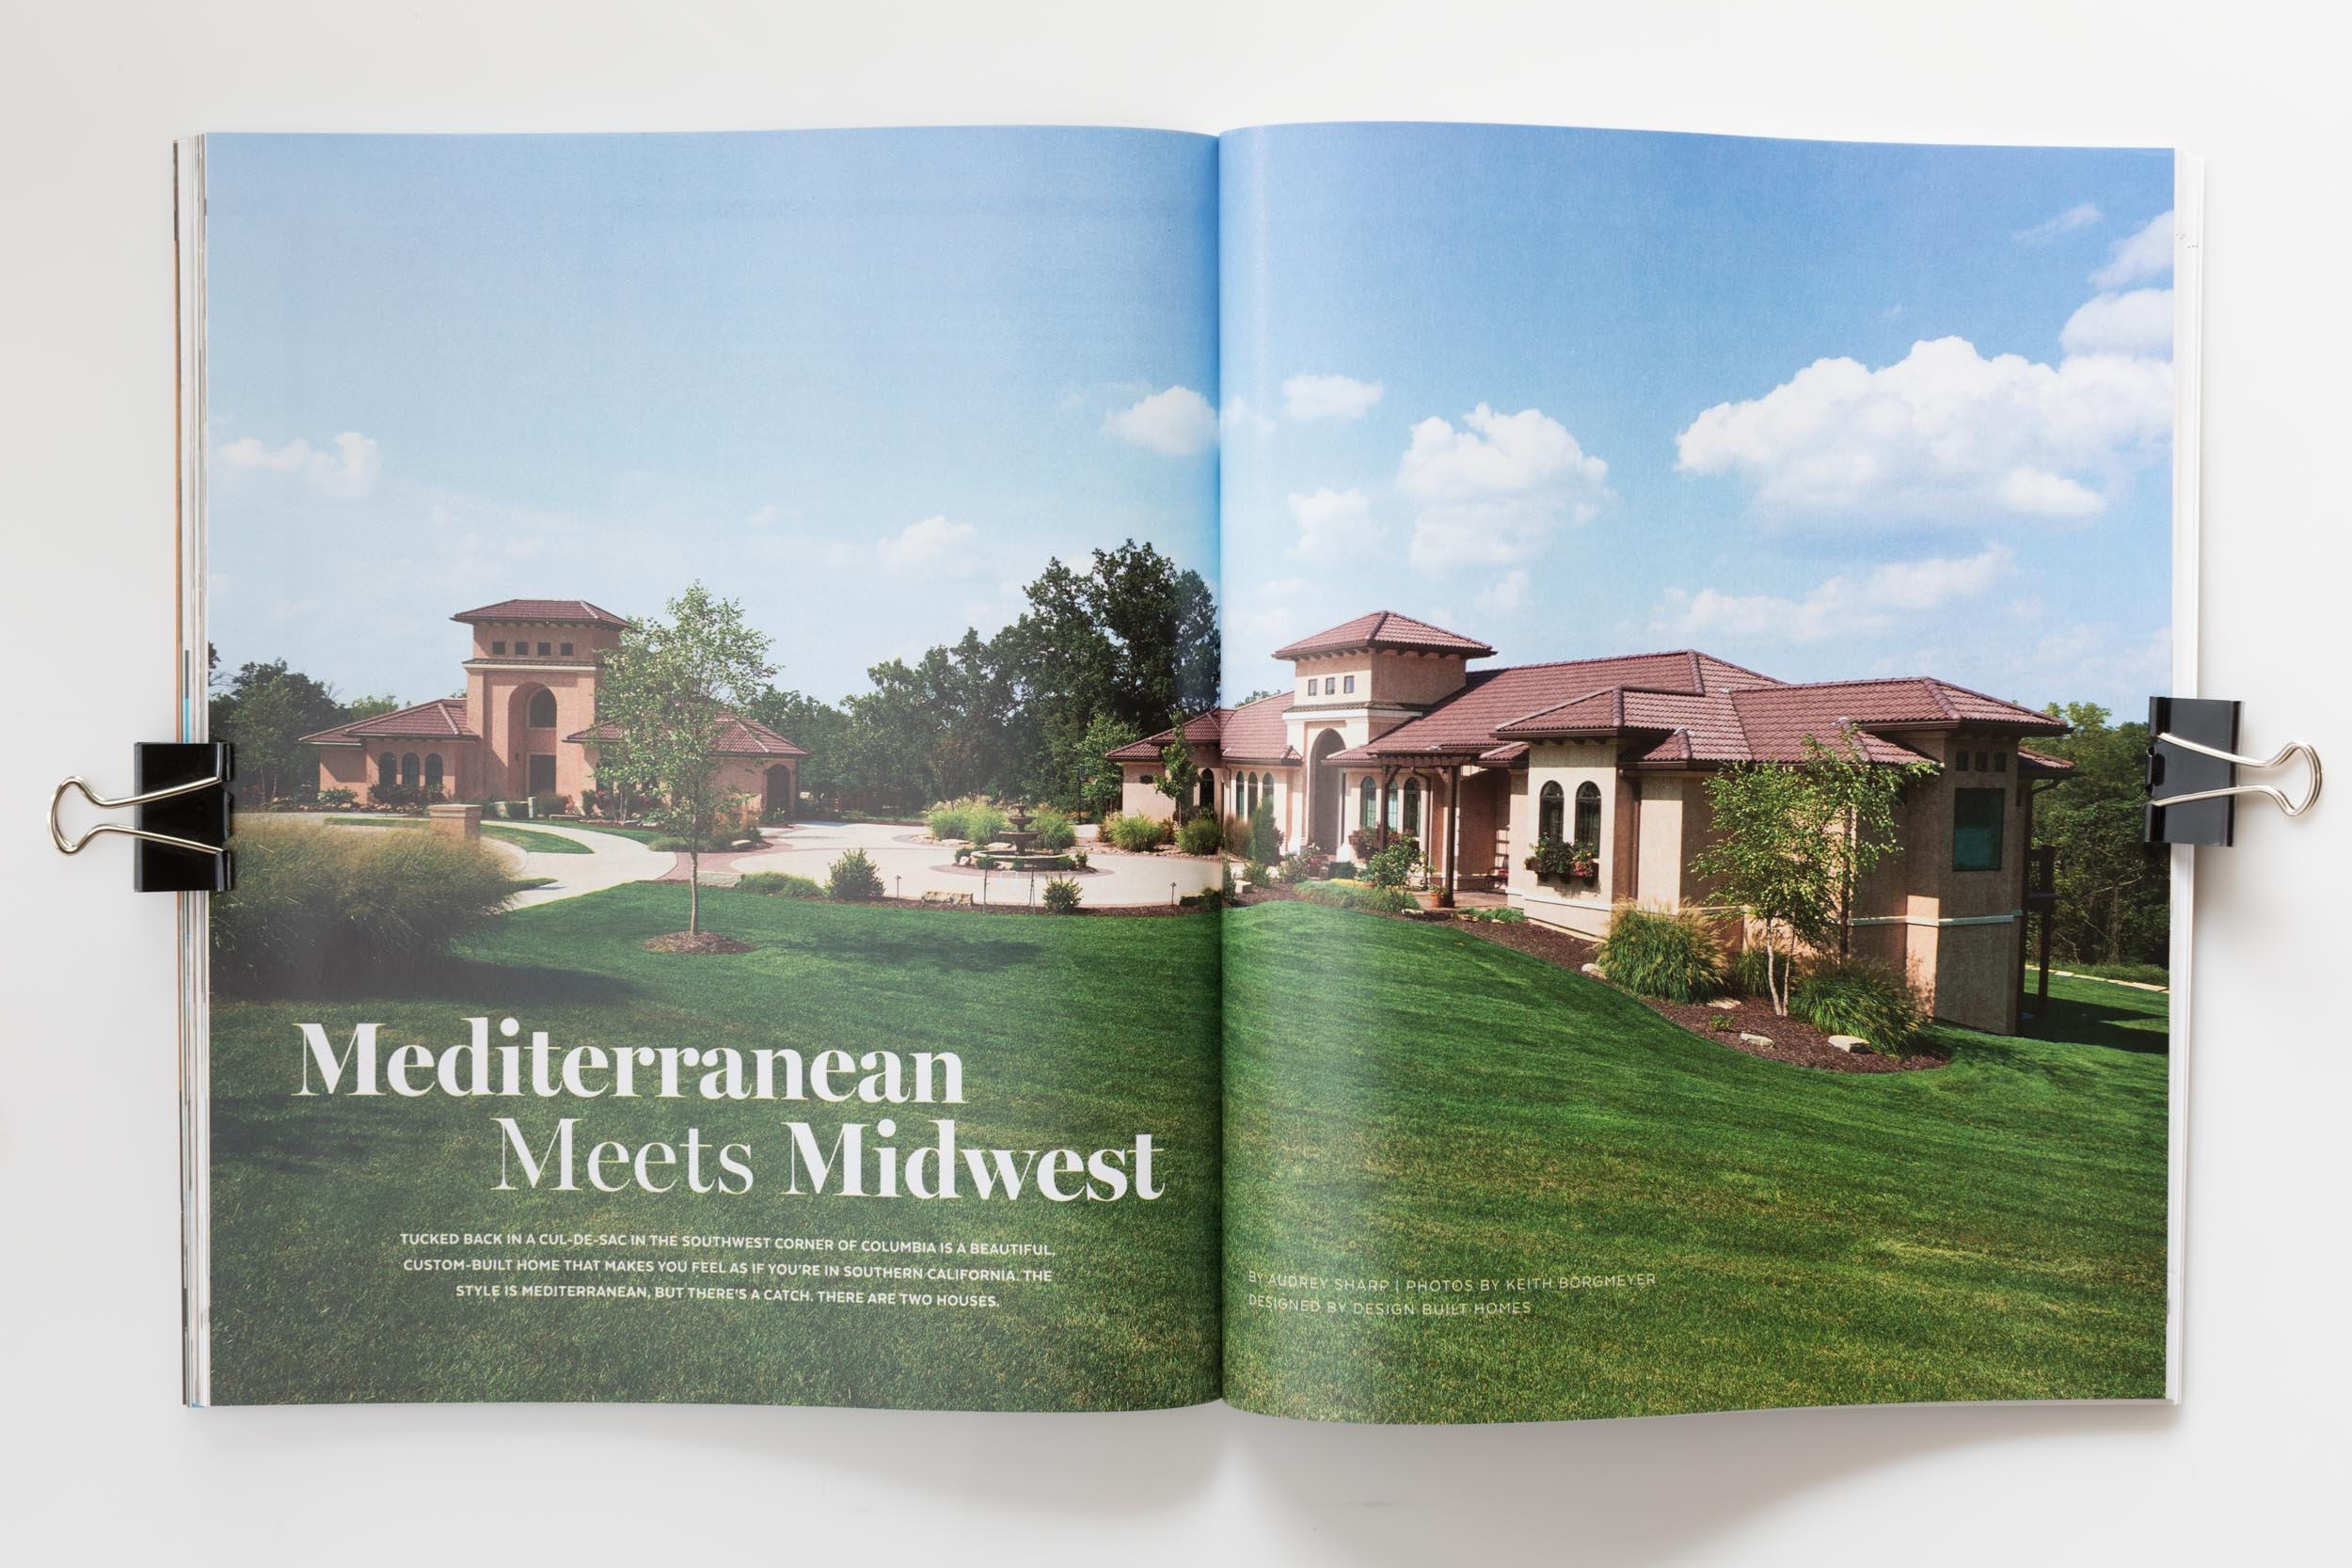 Keith_Borgmeyer_Photographer_Missouri_Editorial_Commercial_Photography087.jpg